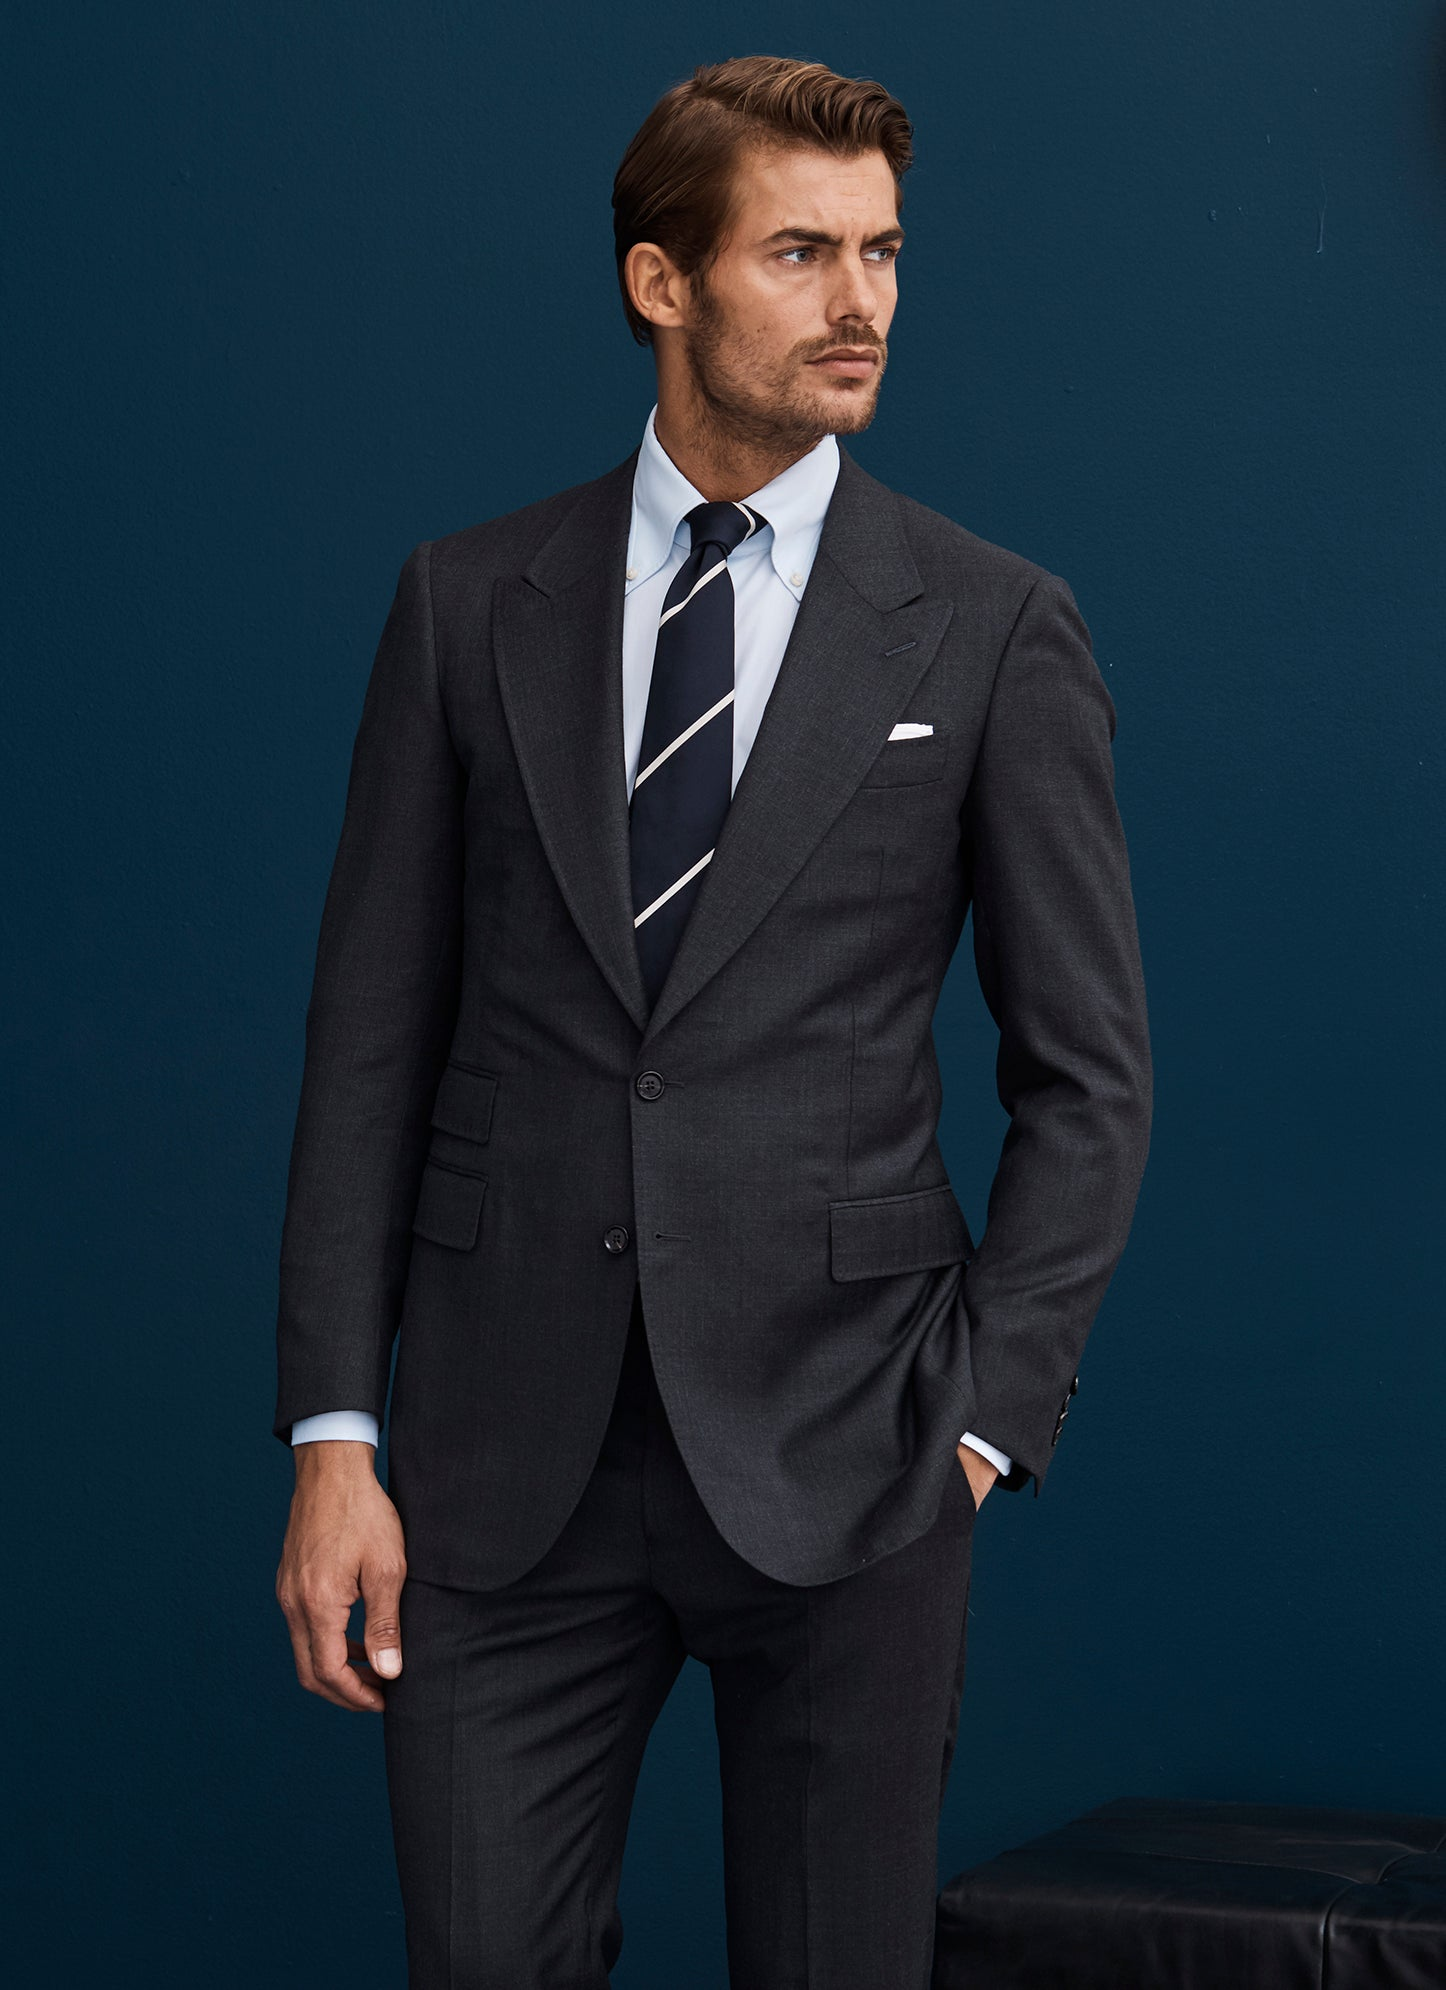 Wide Navy and Thin Cream Stripe Tie